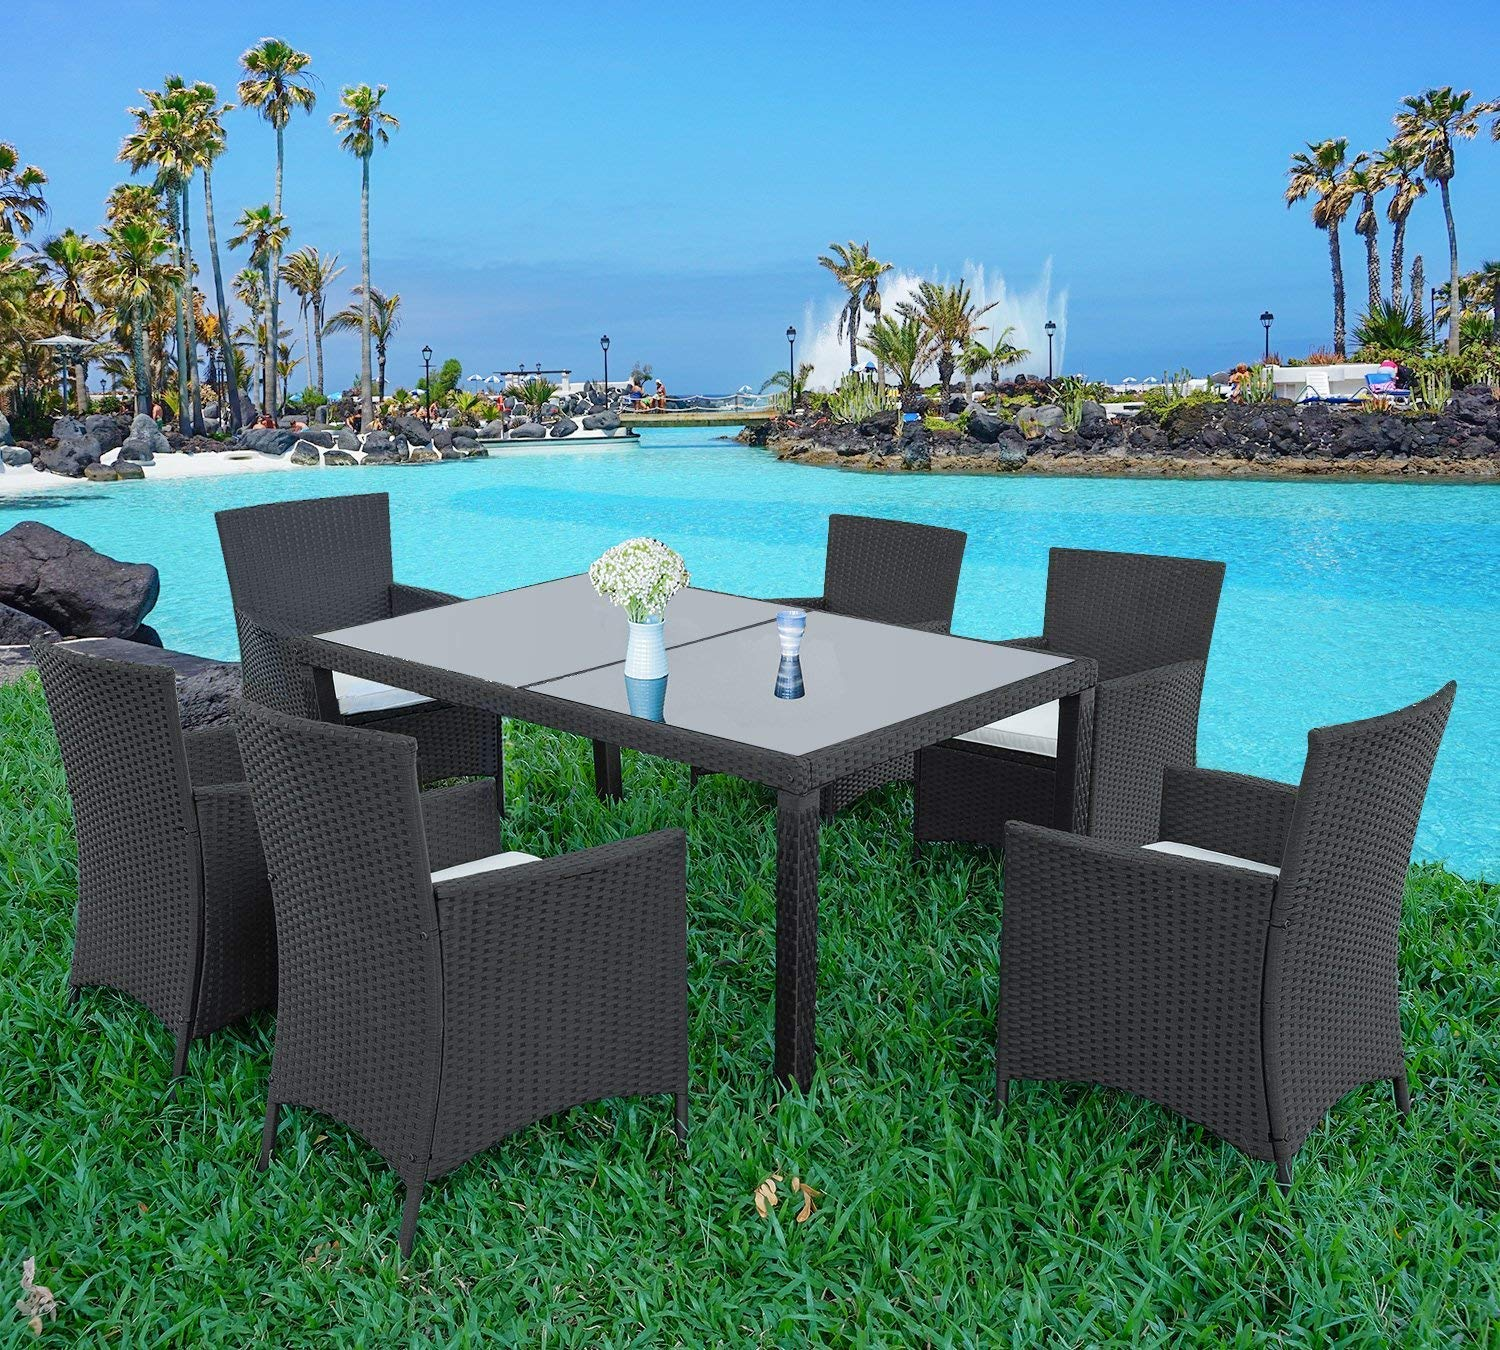 LZ LEISURE ZONE 7 Piece Patio Furniture Dining Set Outdoor Garden Wicker Rattan Dining Table Chairs Conversation Set with Cushions (Black)